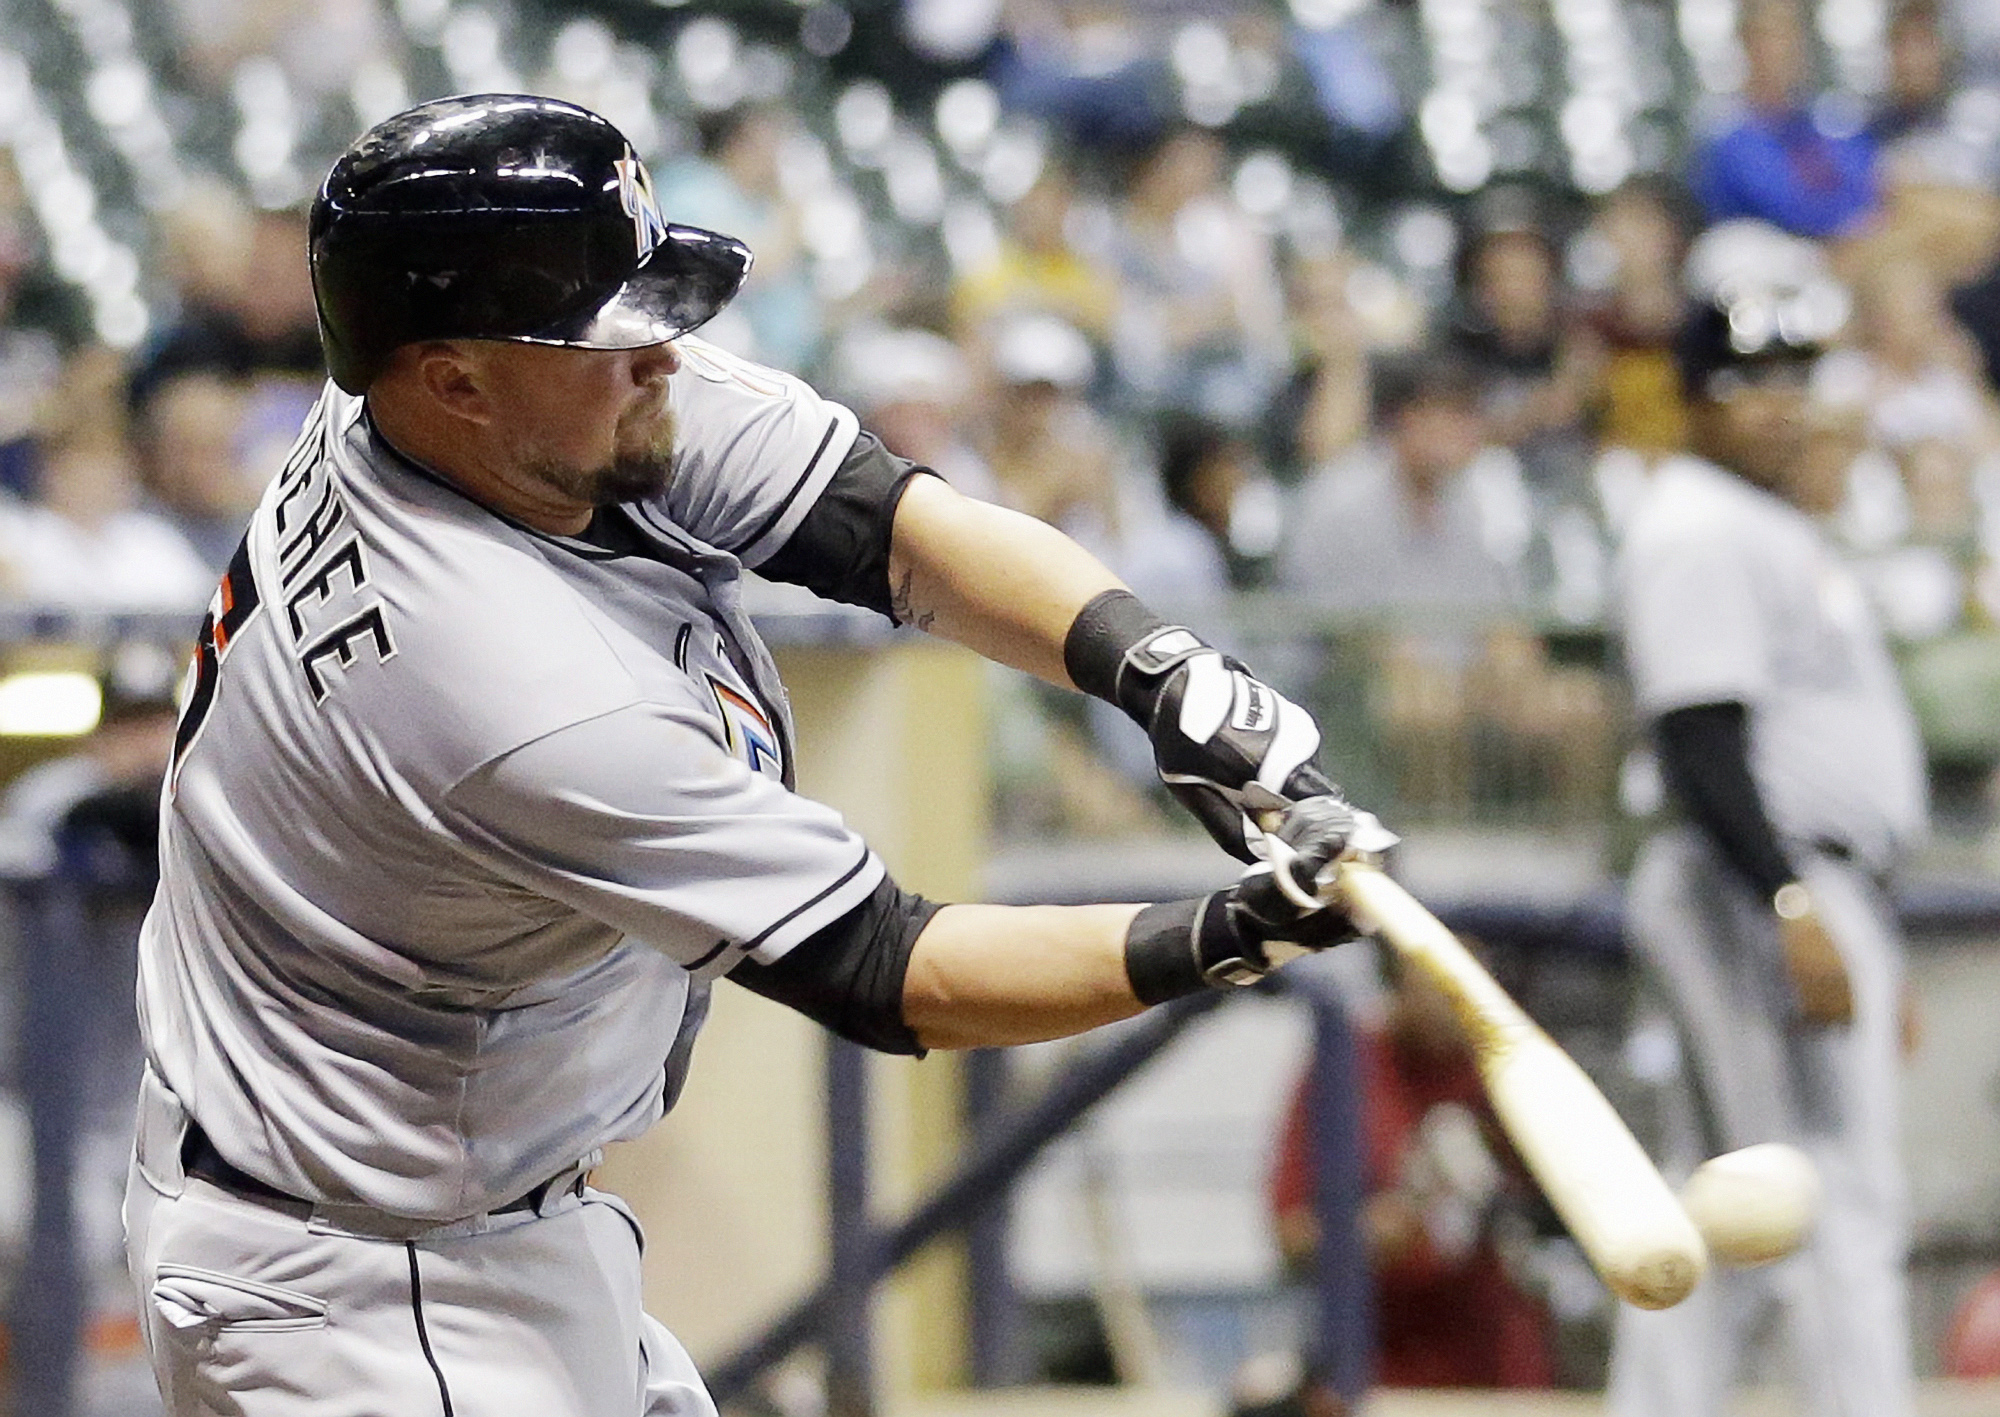 Miami Marlins' Casey McGehee hits an RBI single during the eighth inning of a baseball game against the Milwaukee Brewers Monday, Aug. 17, 2015, in Milwaukee. (AP Photo/Morry Gash)